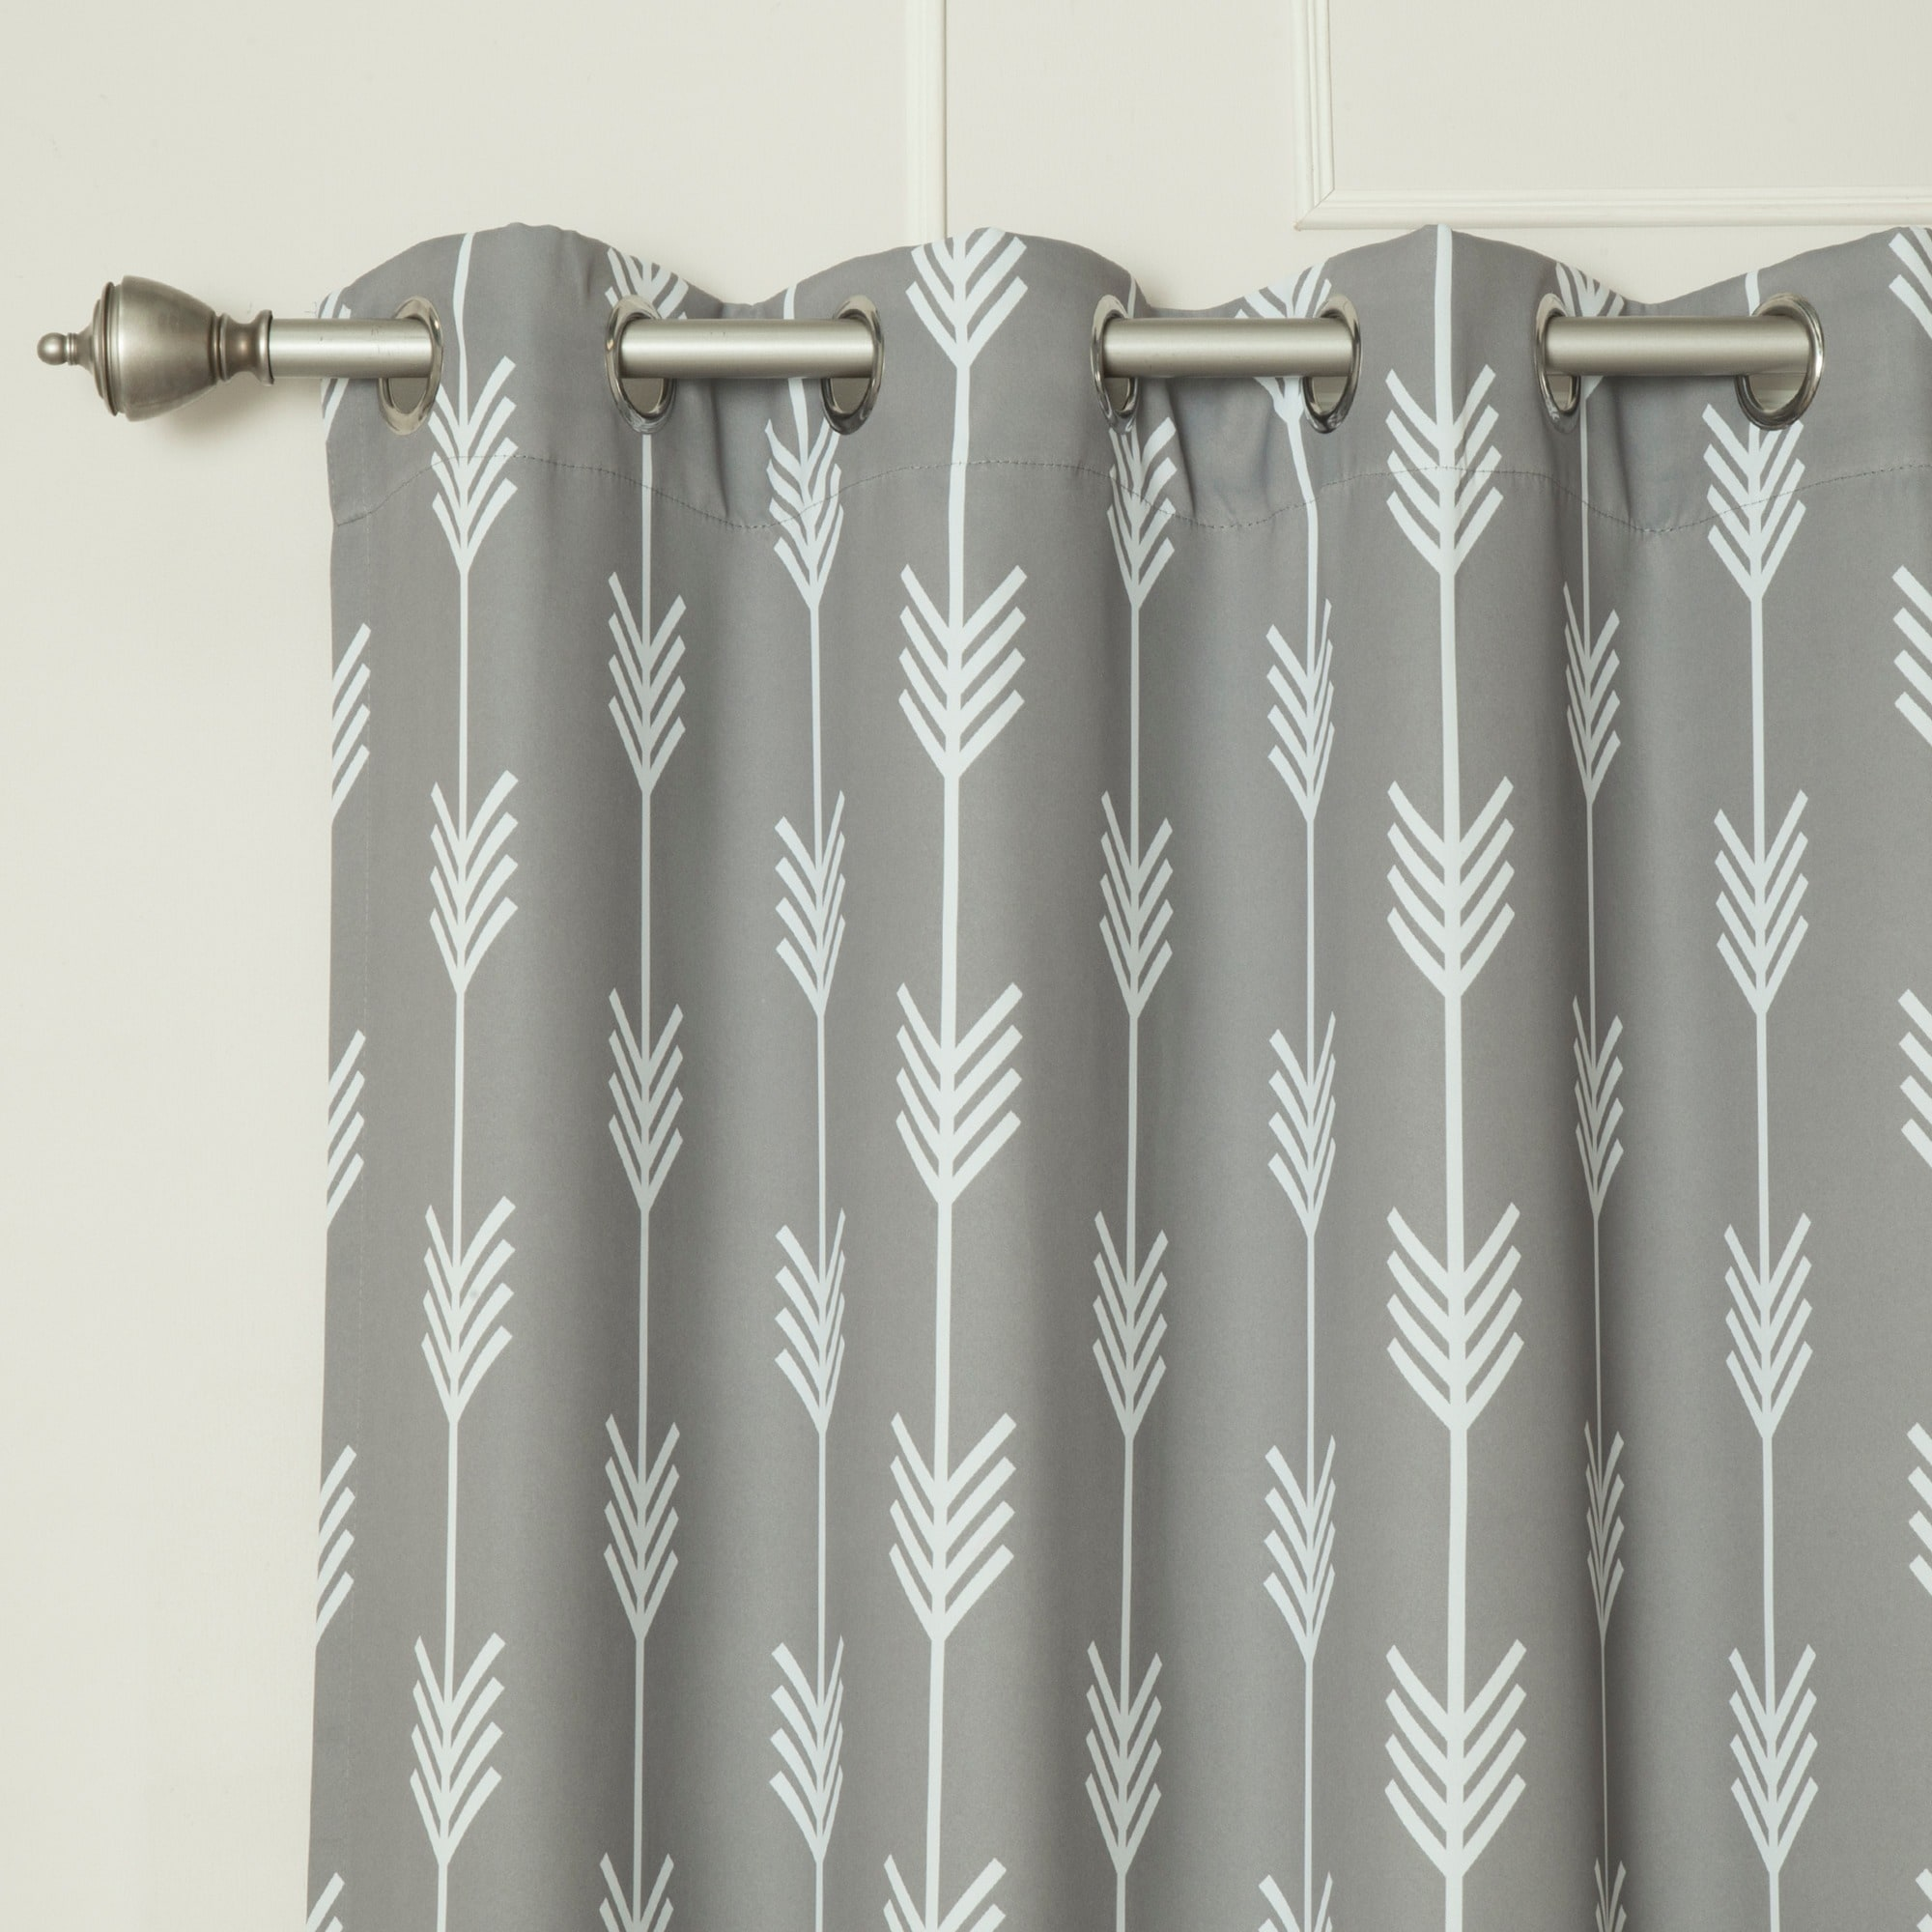 Marvelous Aurora Home Arrow 52 Inch X 84 Inch Room Darkening Blackout Grommet Curtain  Panel Pair   Free Shipping Today   Overstock.com   16614770